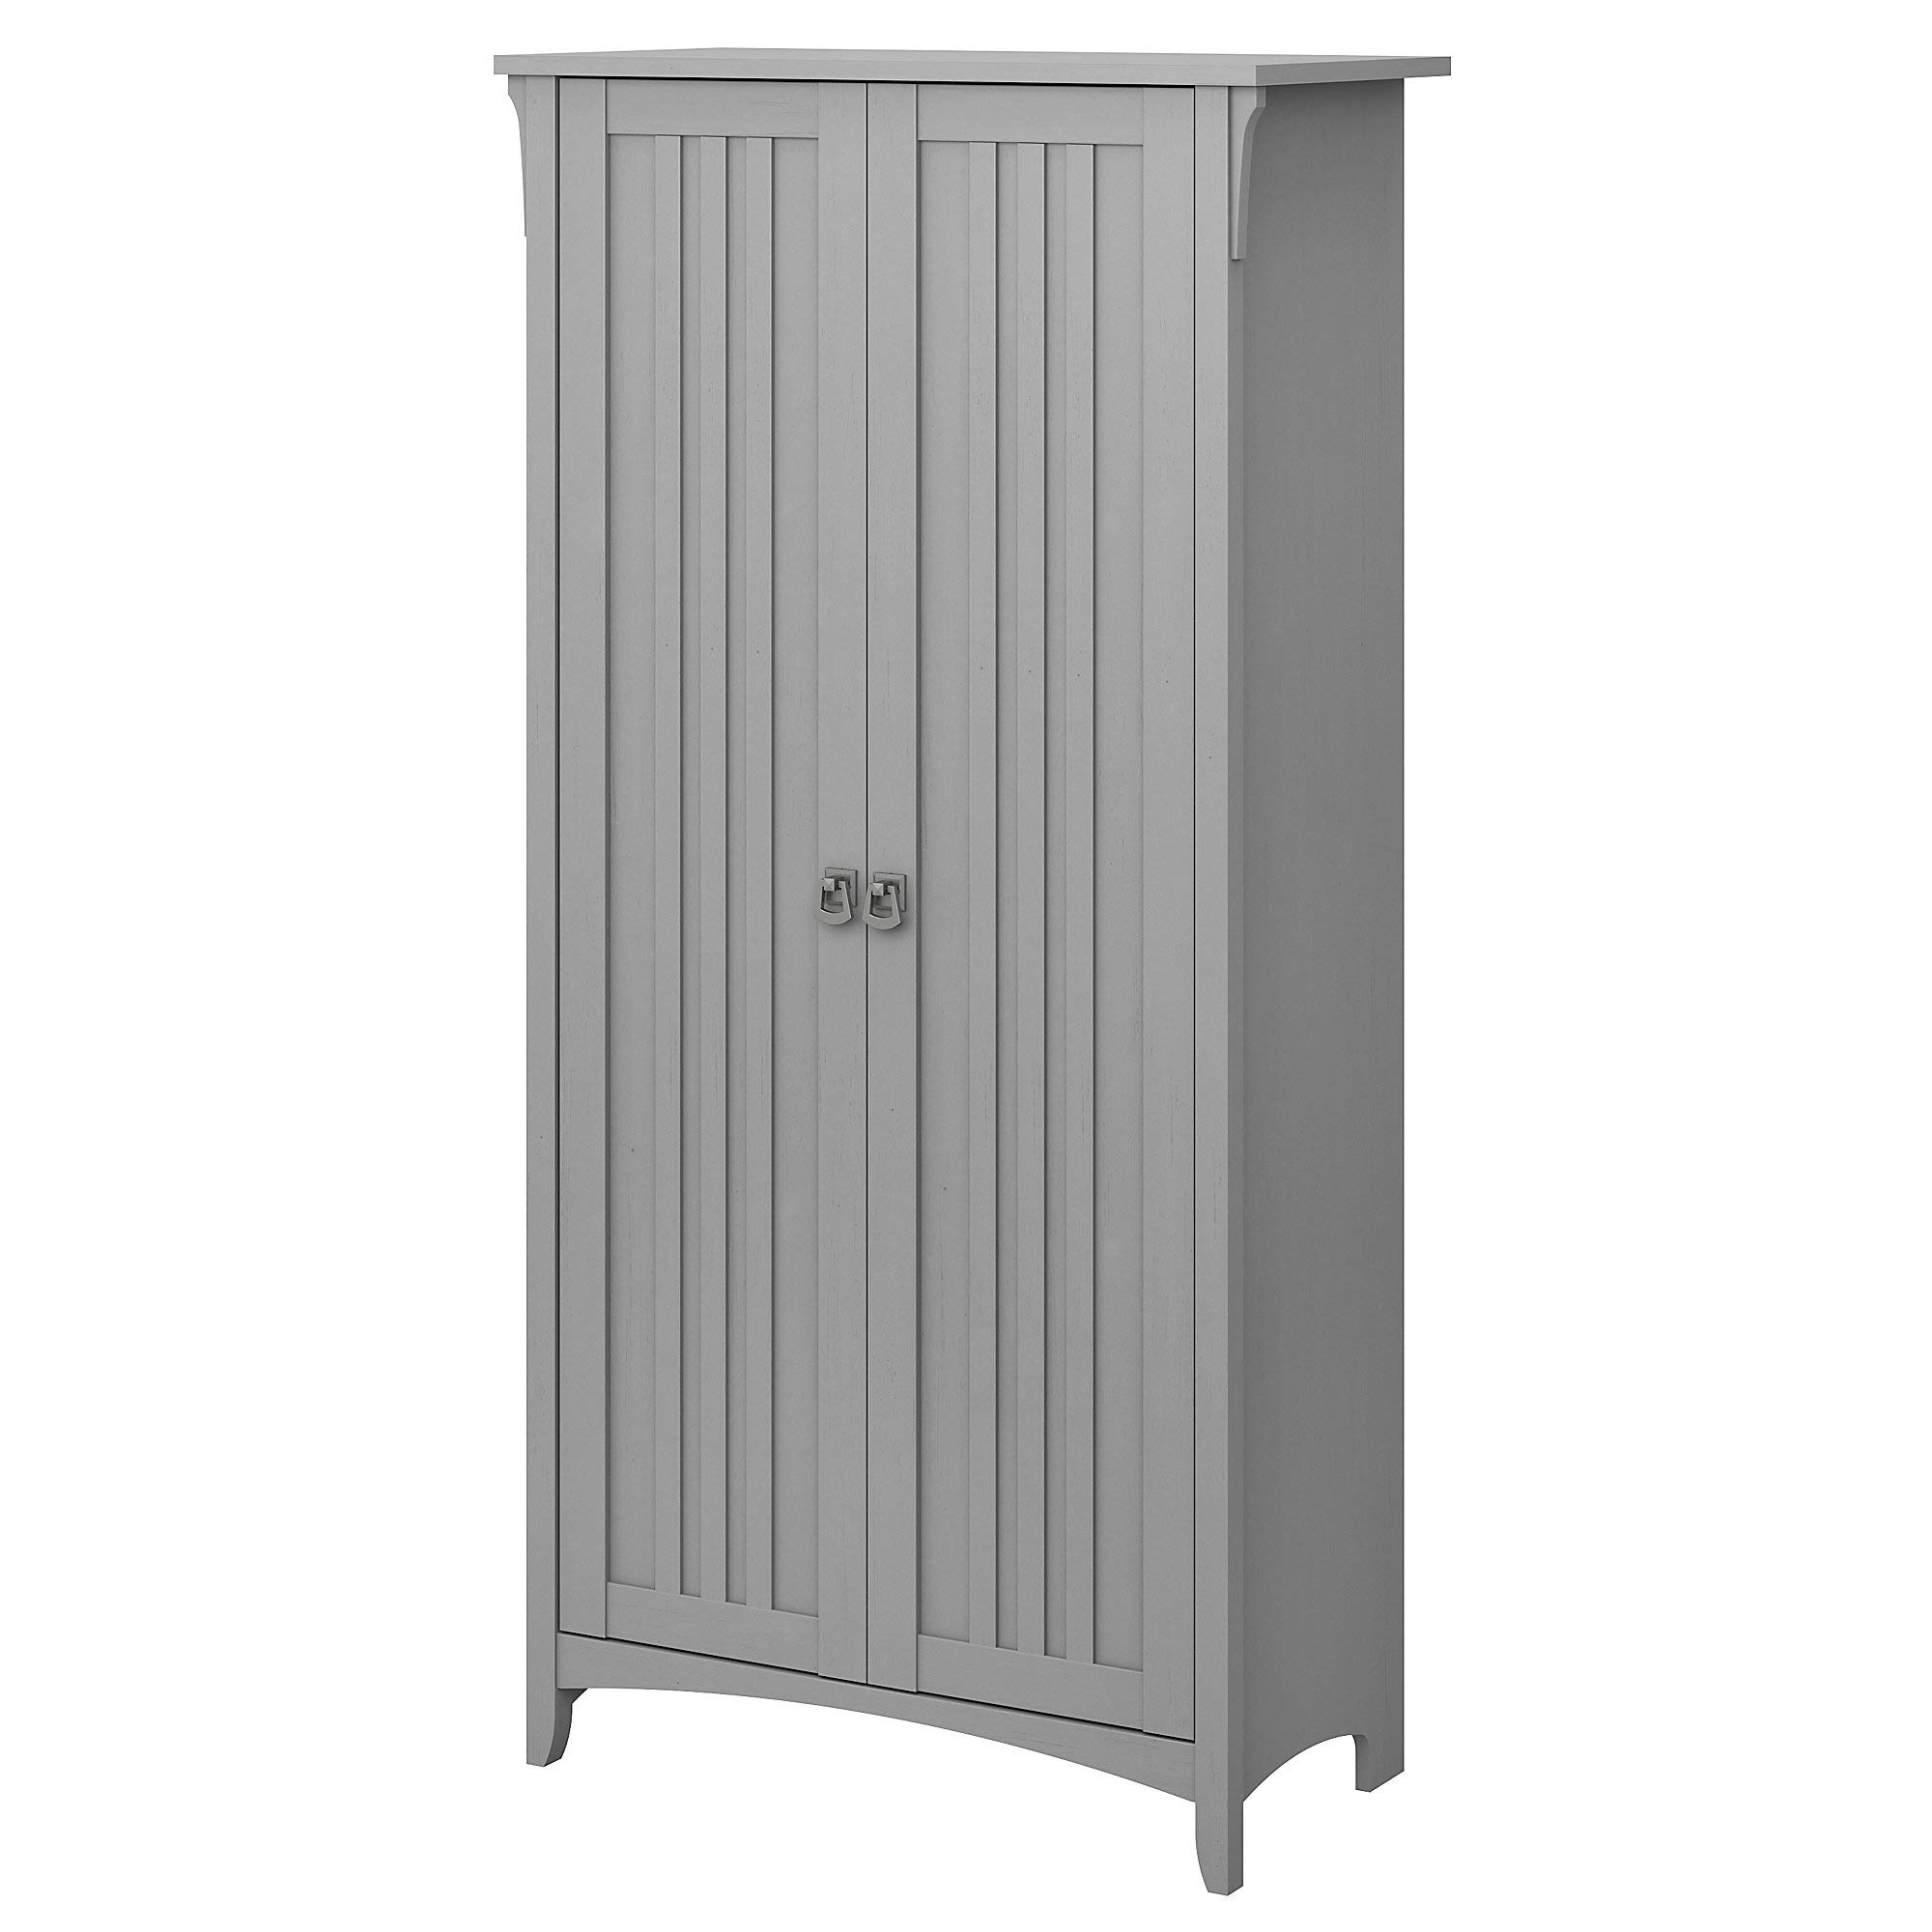 Bush Furniture Salinas Kitchen Pantry Cabinet with Doors in Cape Cod Gray by Bush Furniture